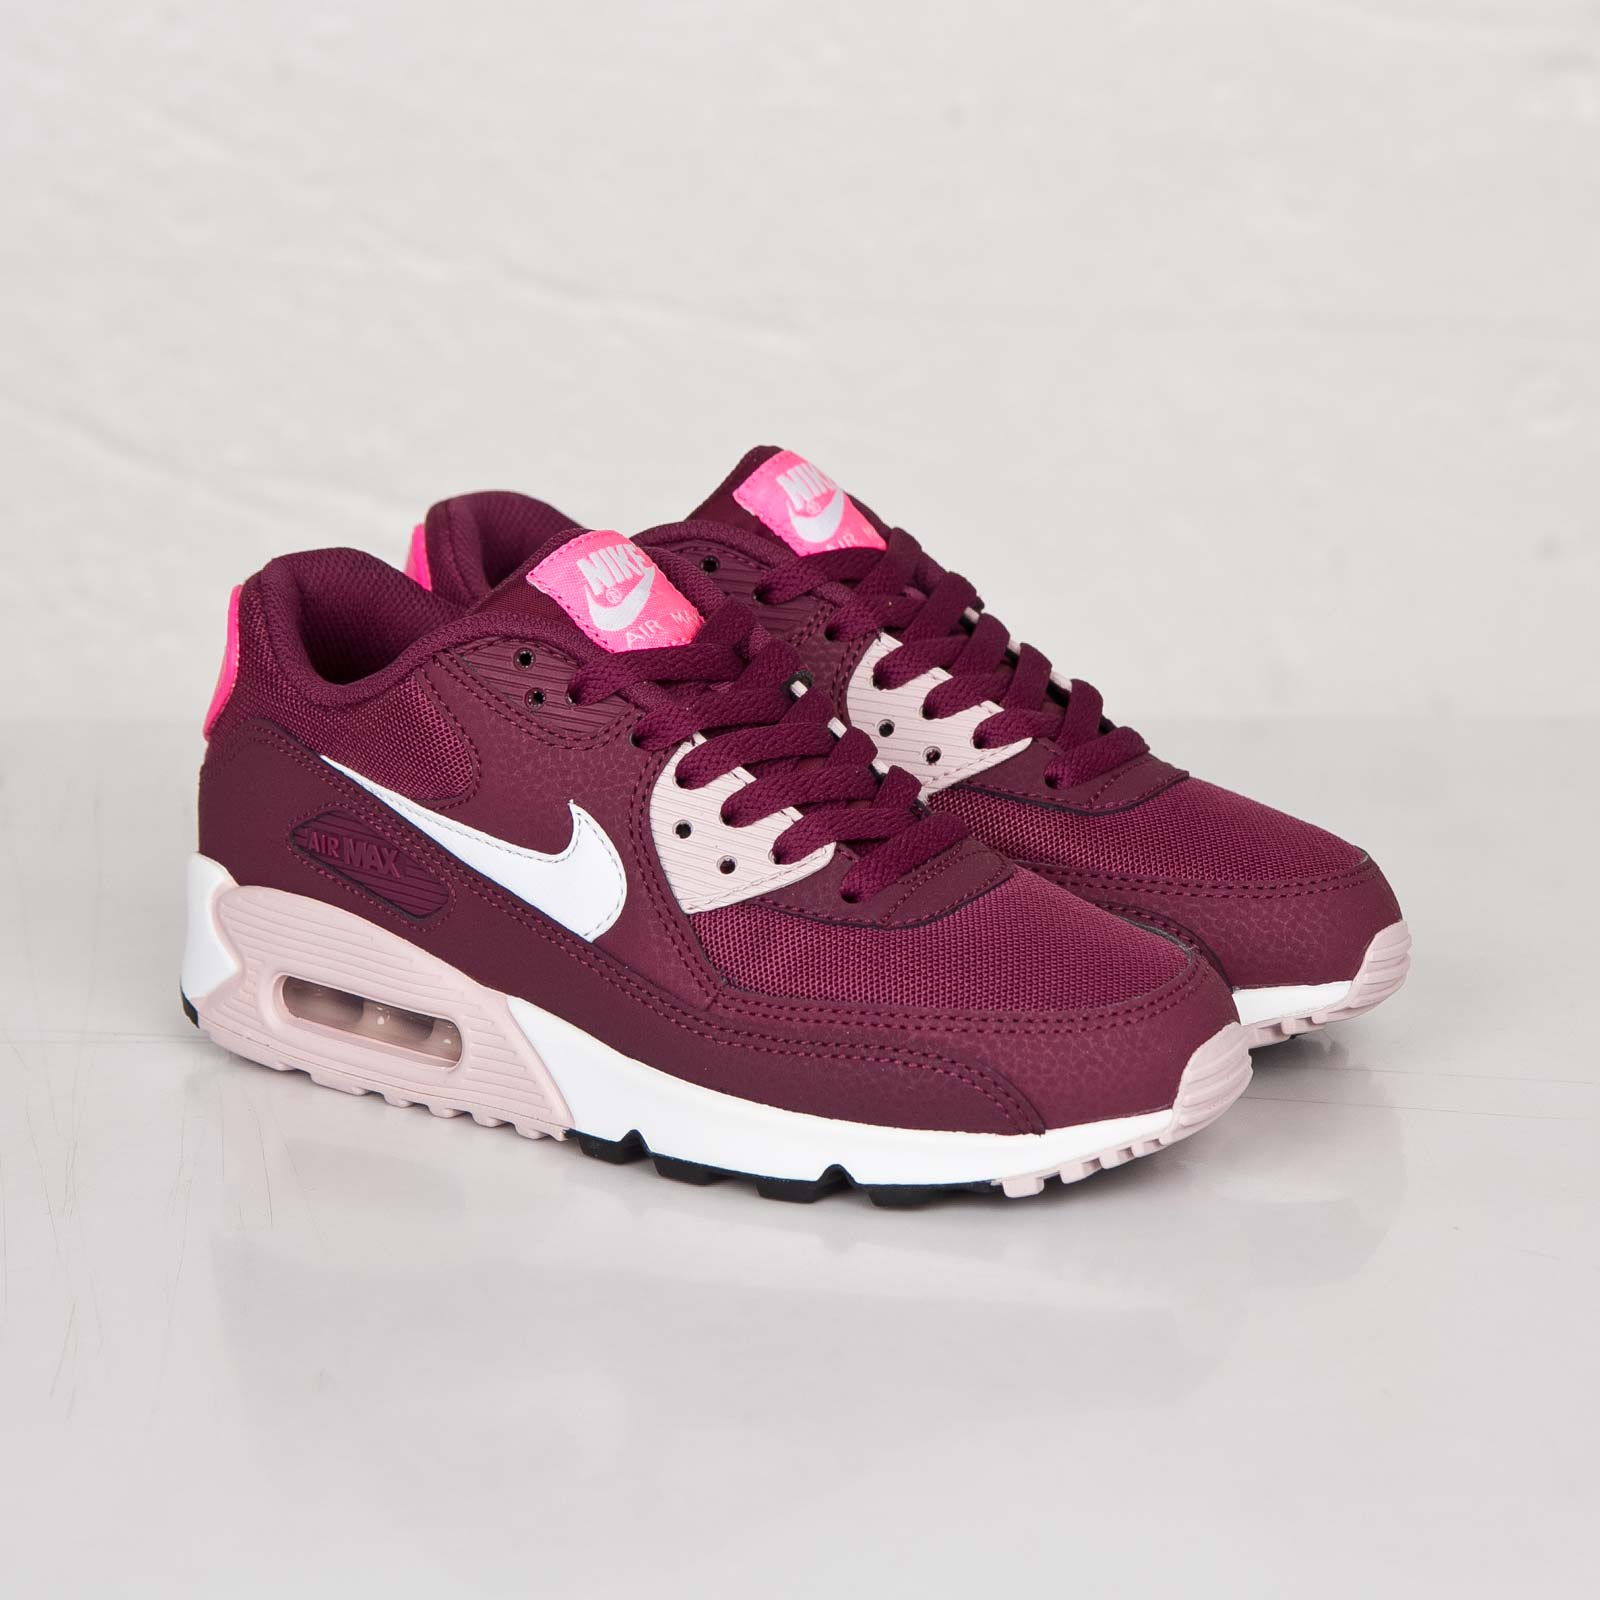 Nike Wmns Air Max 90 Essential 616730 600 Sneakersnstuff